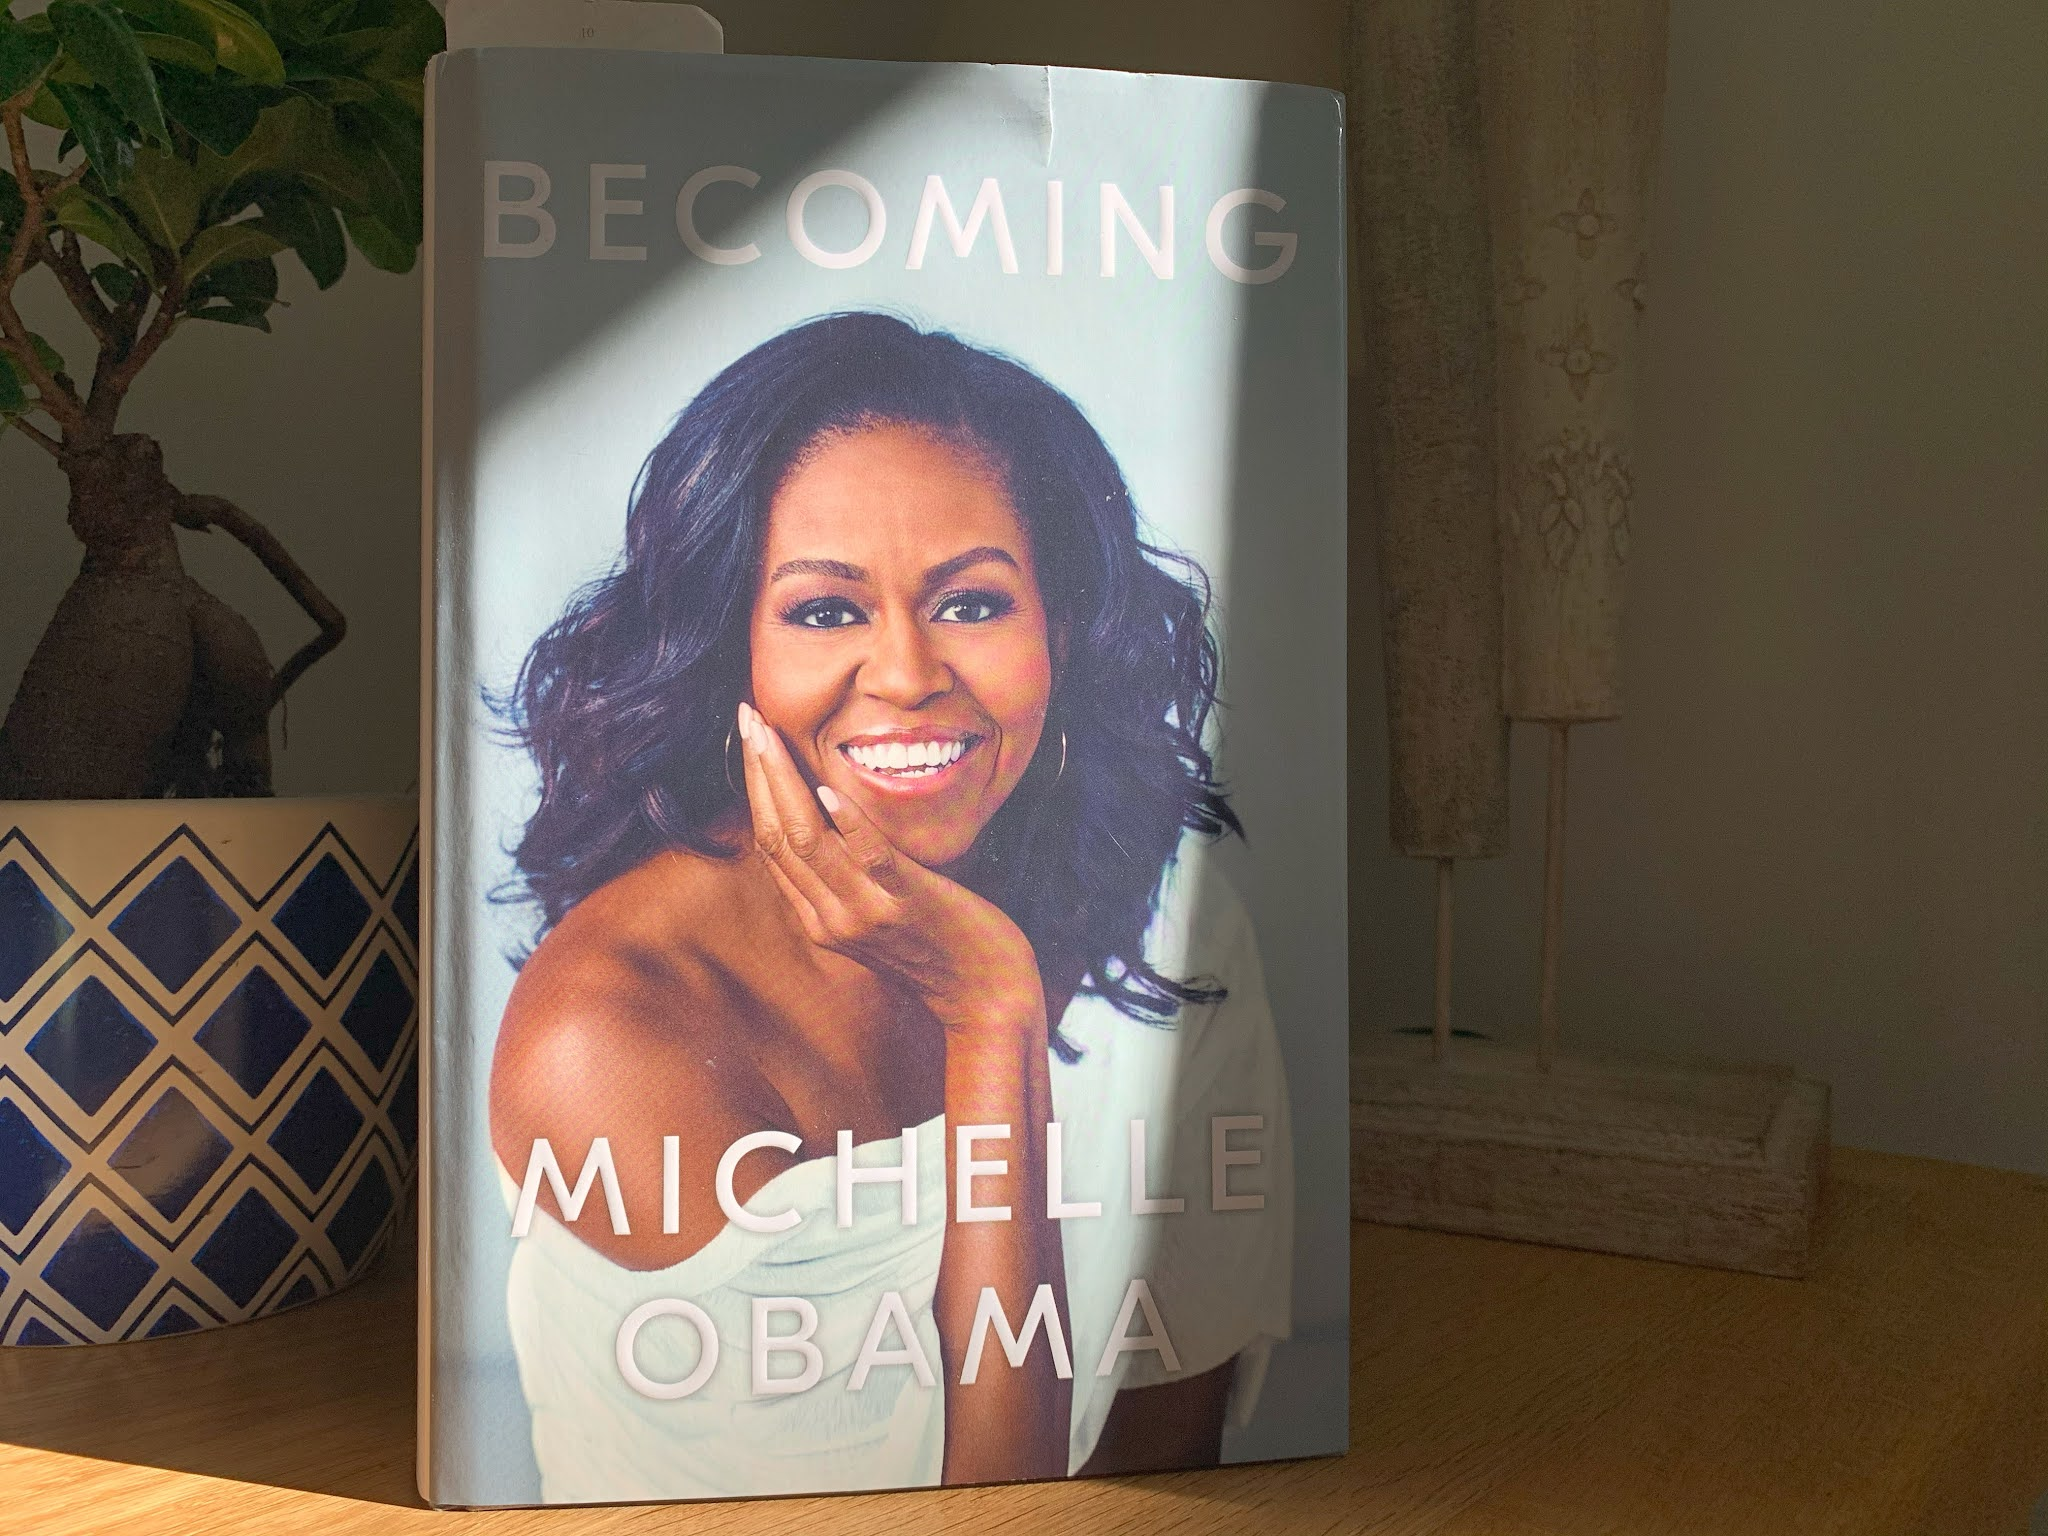 Becoming by Michelle Obama on a shelf